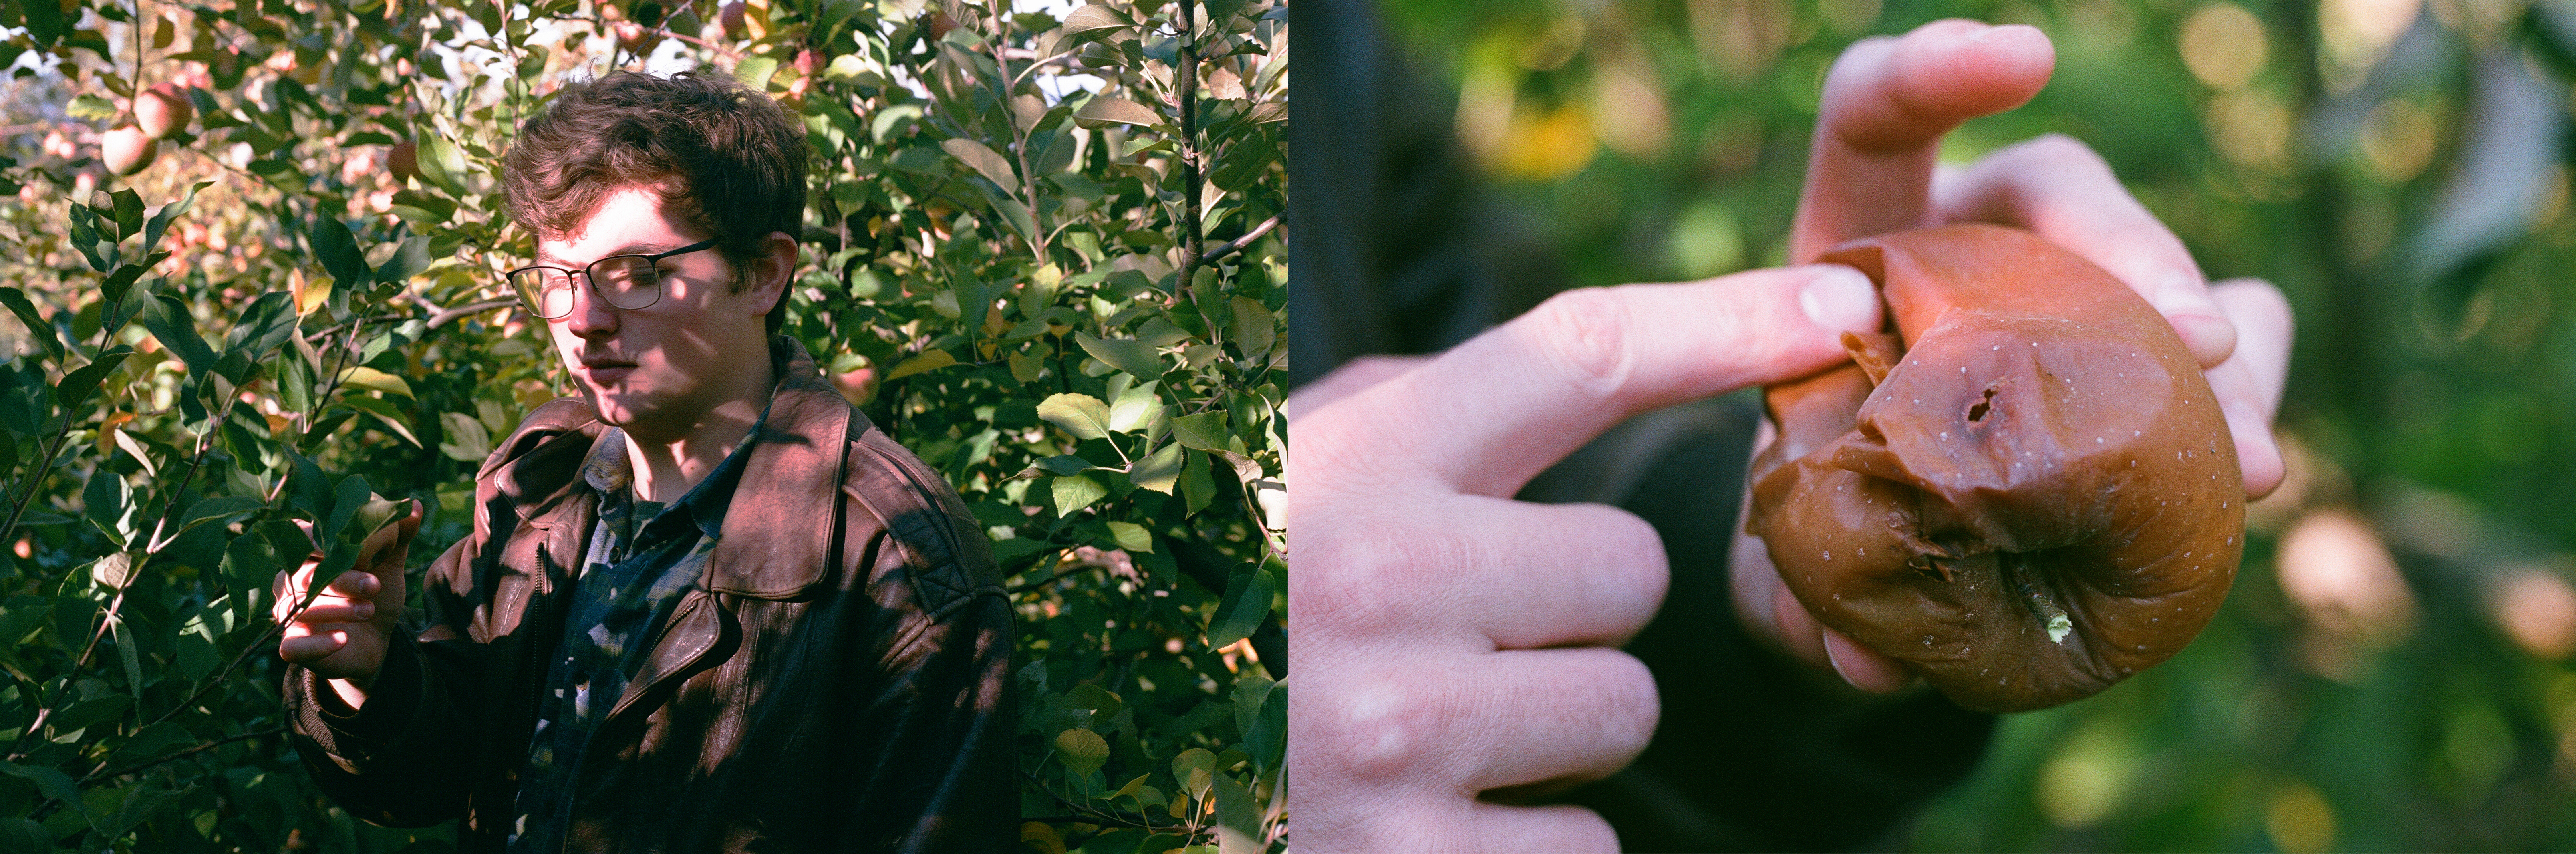 contemporary fine art photography portrait of man in apple orchard holding apple sexualized fruit